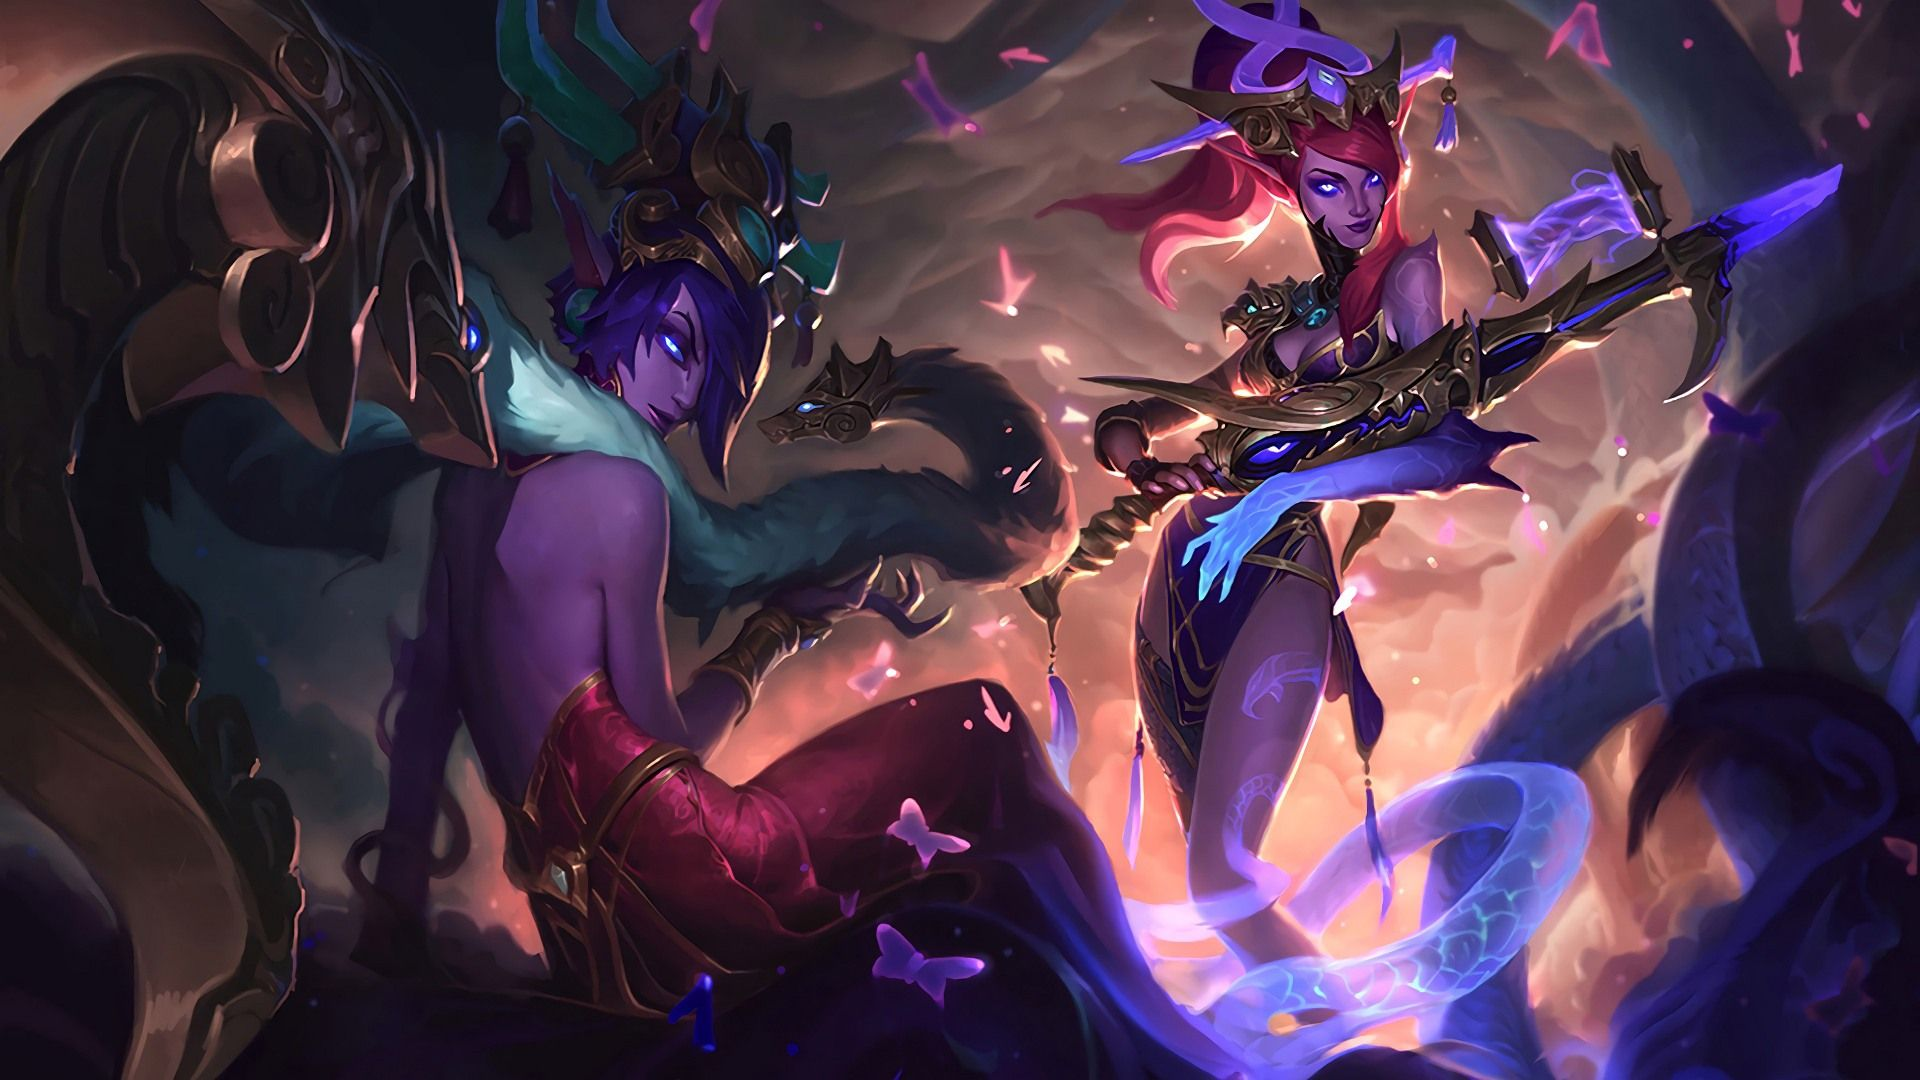 Download Wallpaper Lunar Wraith Caitlyn And Morgana Full Hd On